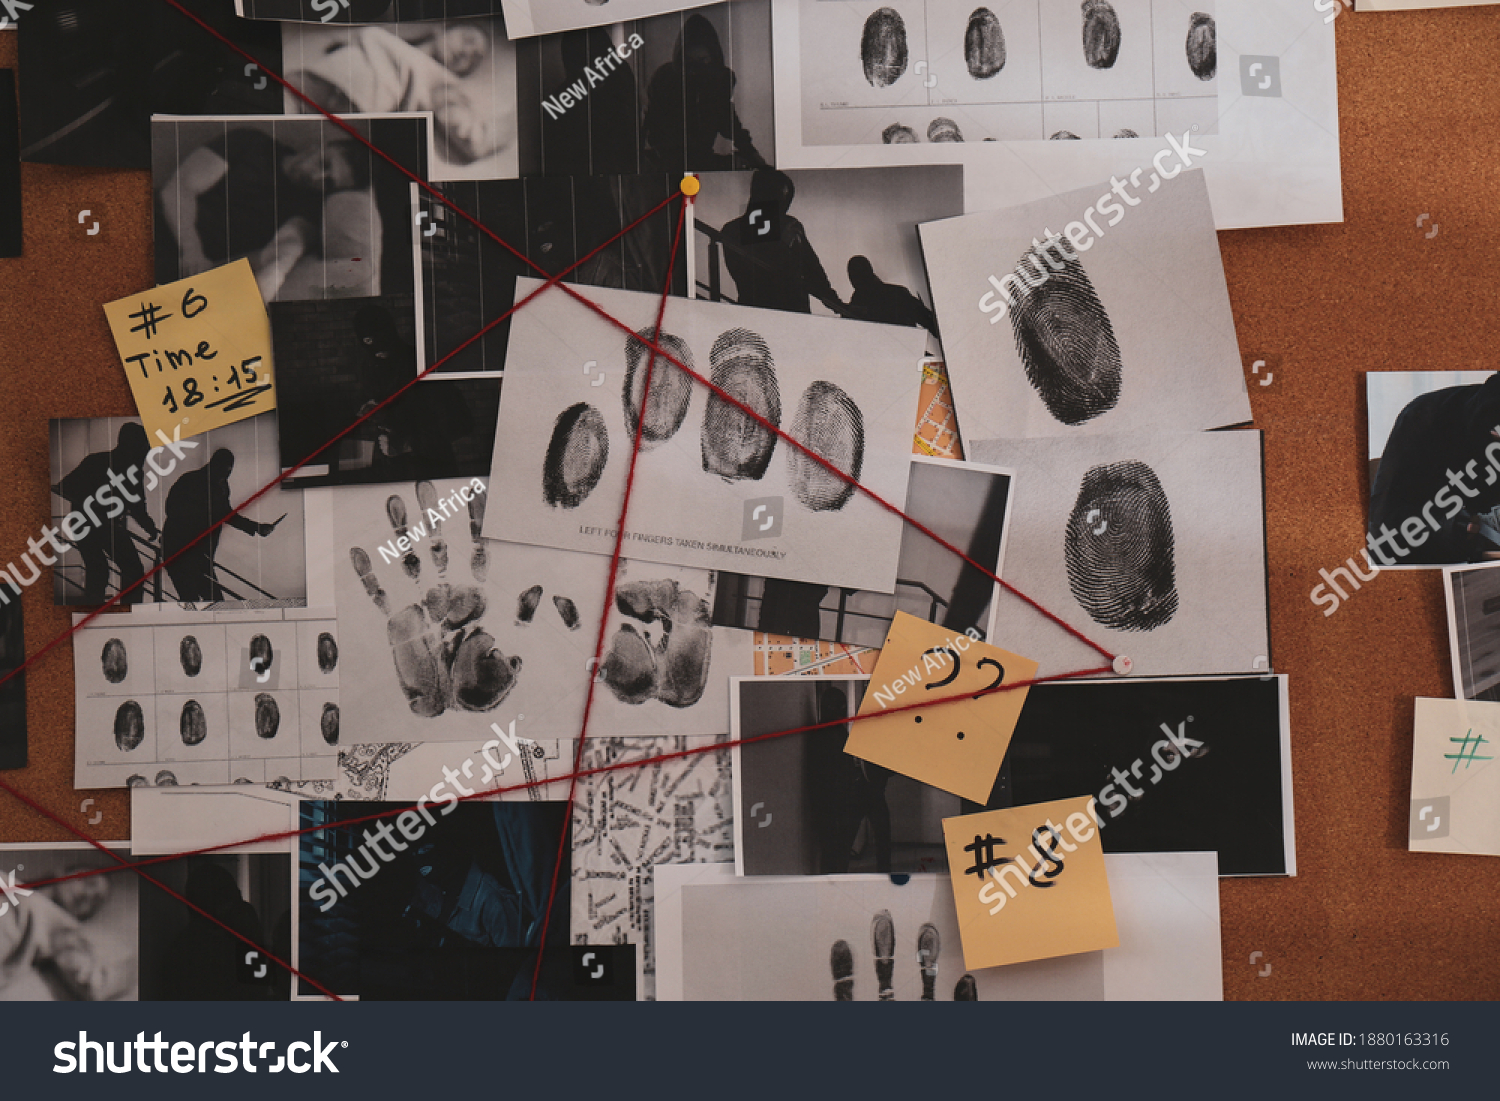 Detective board with crime scene photos, stickers, clues and red thread, closeup #1880163316